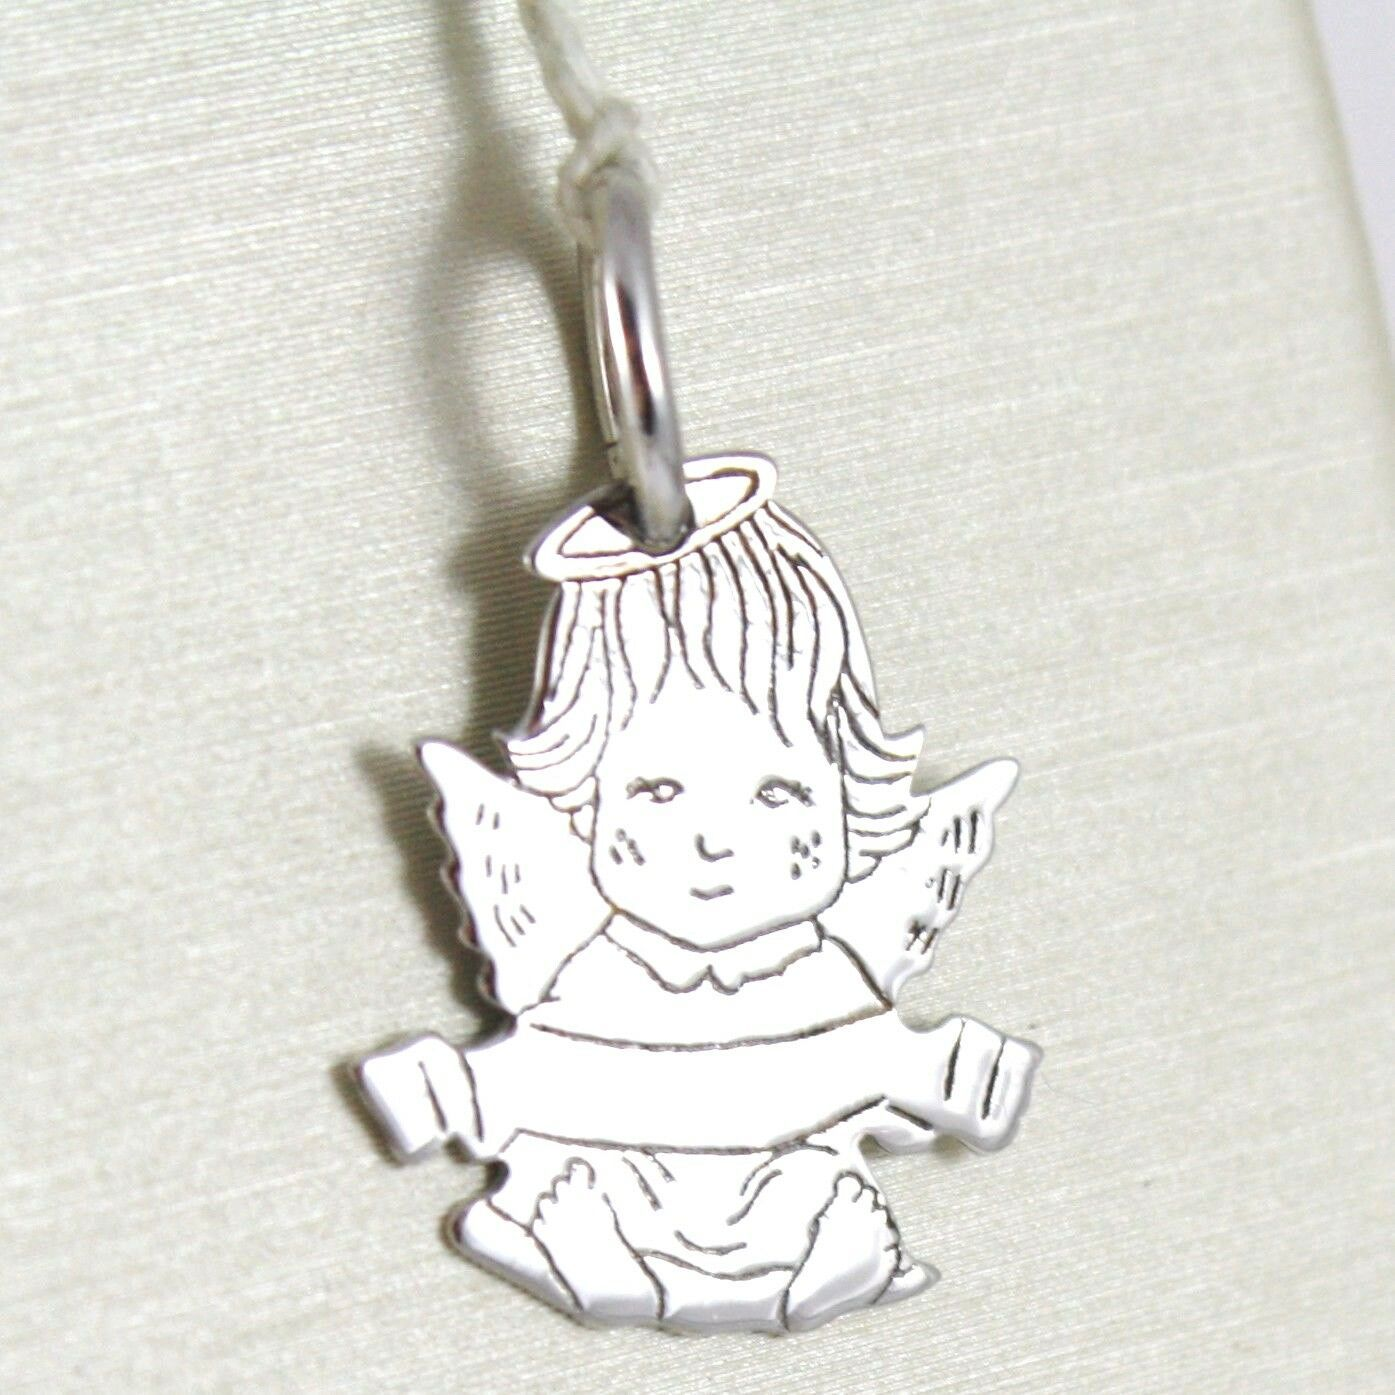 SOLID 18K WHITE GOLD PENDANT MEDAL, STYLIZED GUARDIAN ANGEL, ENGRAVED NAME